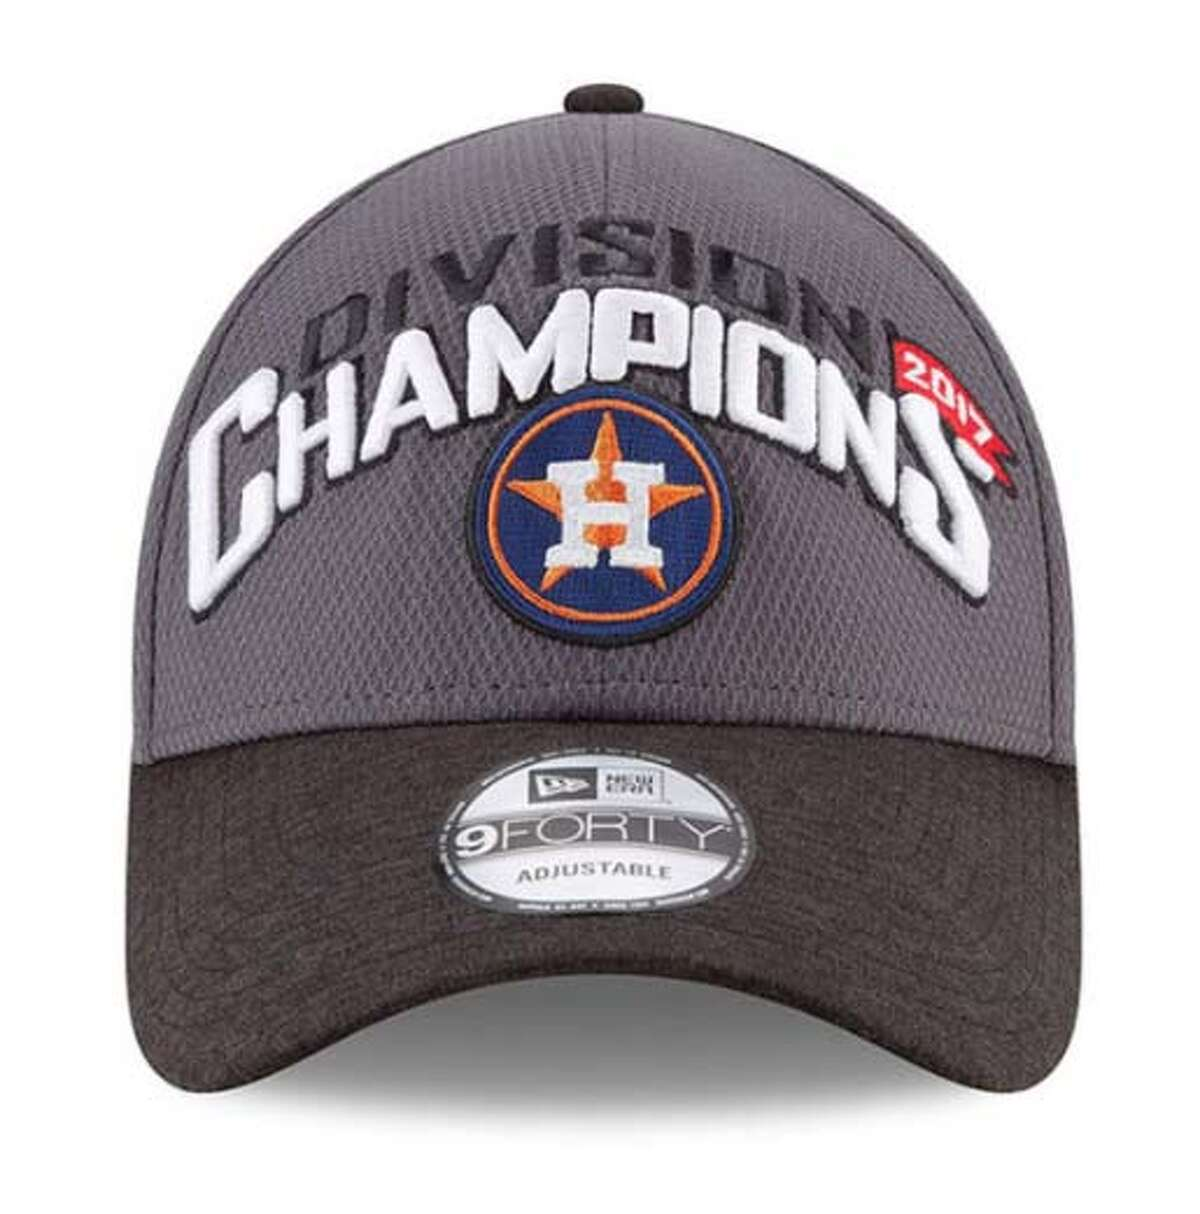 The Houston Astros have playoff gear for sale so fans can get ready for the playoffs.